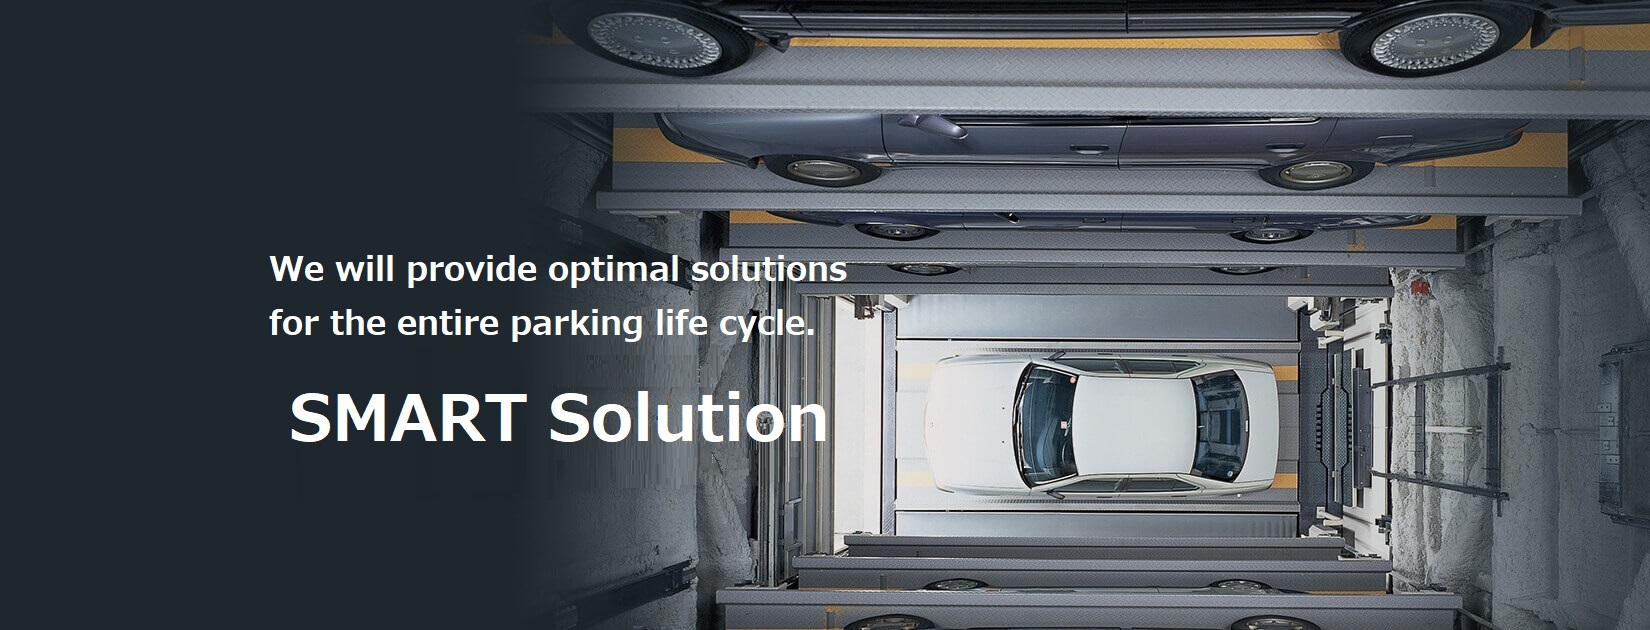 We will provide optimal solutions for the entire parking life cycle